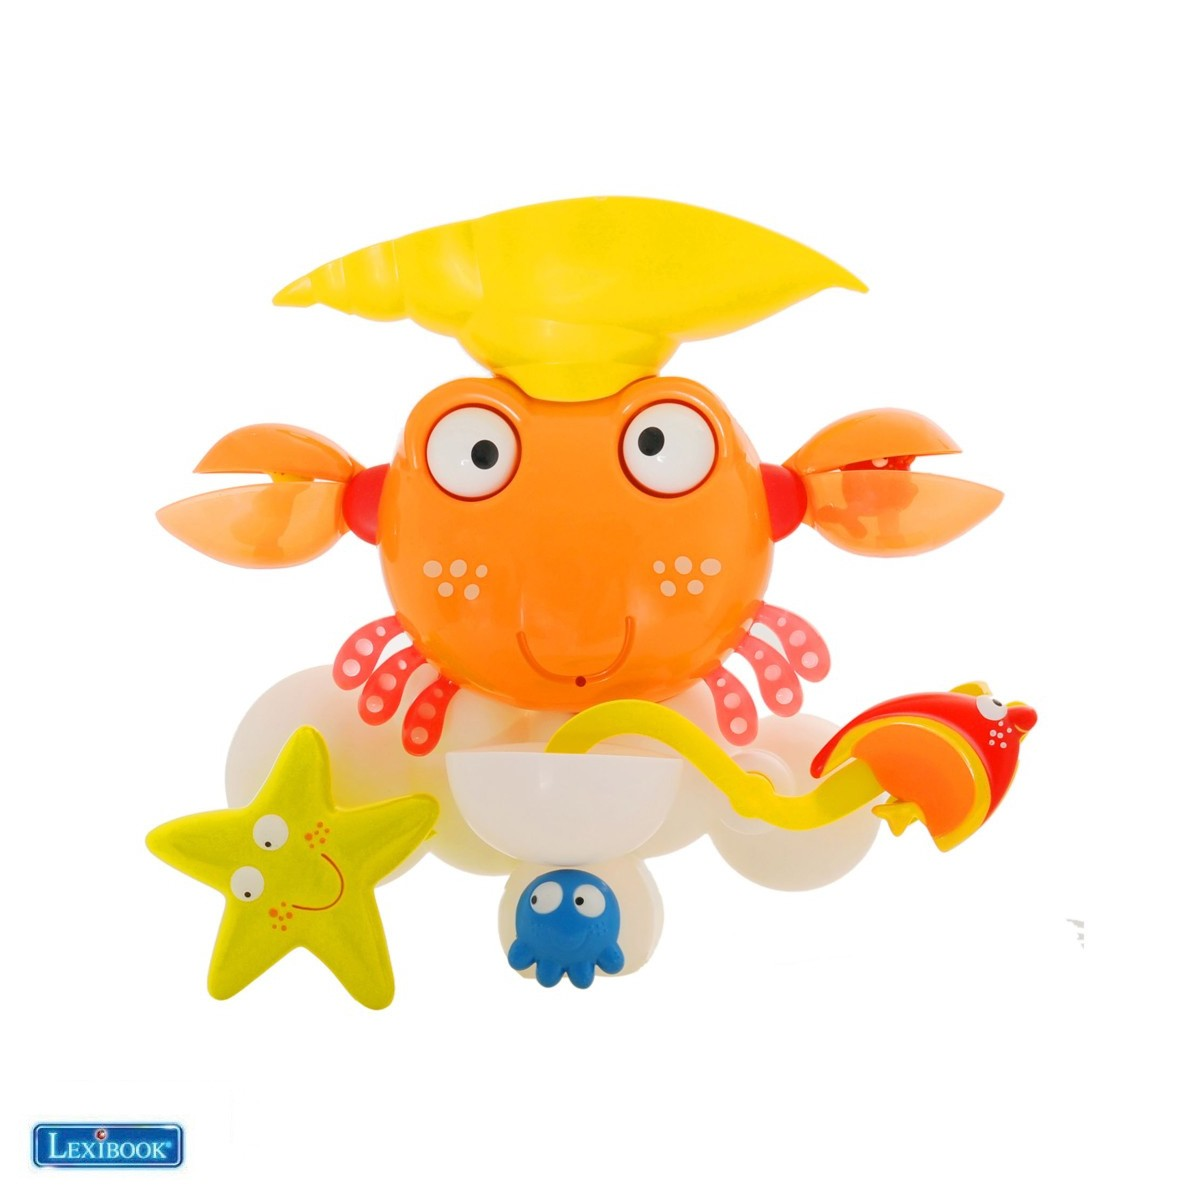 "Jeu de bain ""Water Crab®"", Crabe de bain - Lexibook IT025-07"